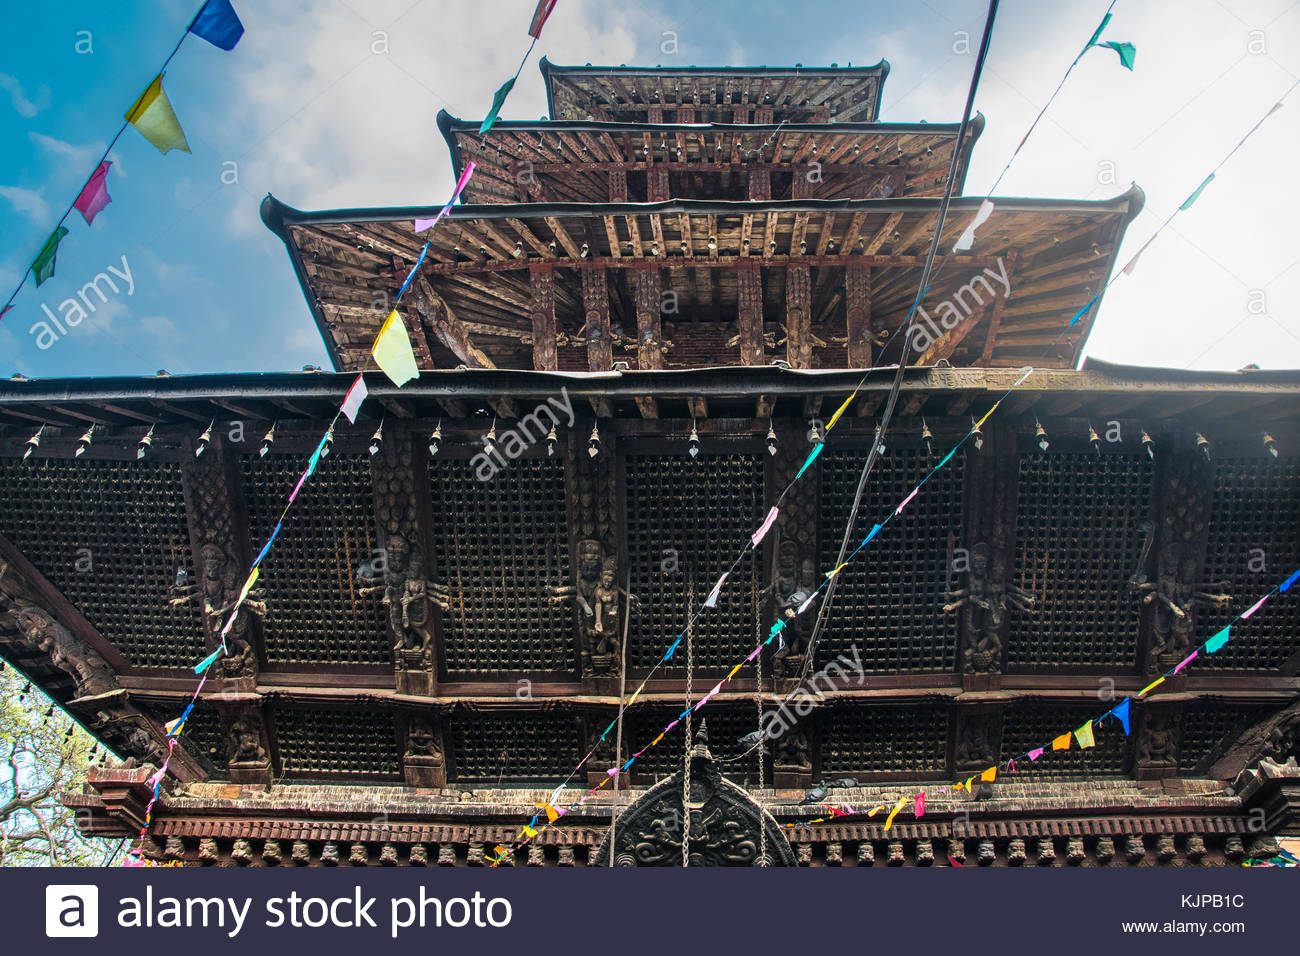 traditional building with old architecture nepalese with wooden roofs in kathmandu. nepal - Stock Image